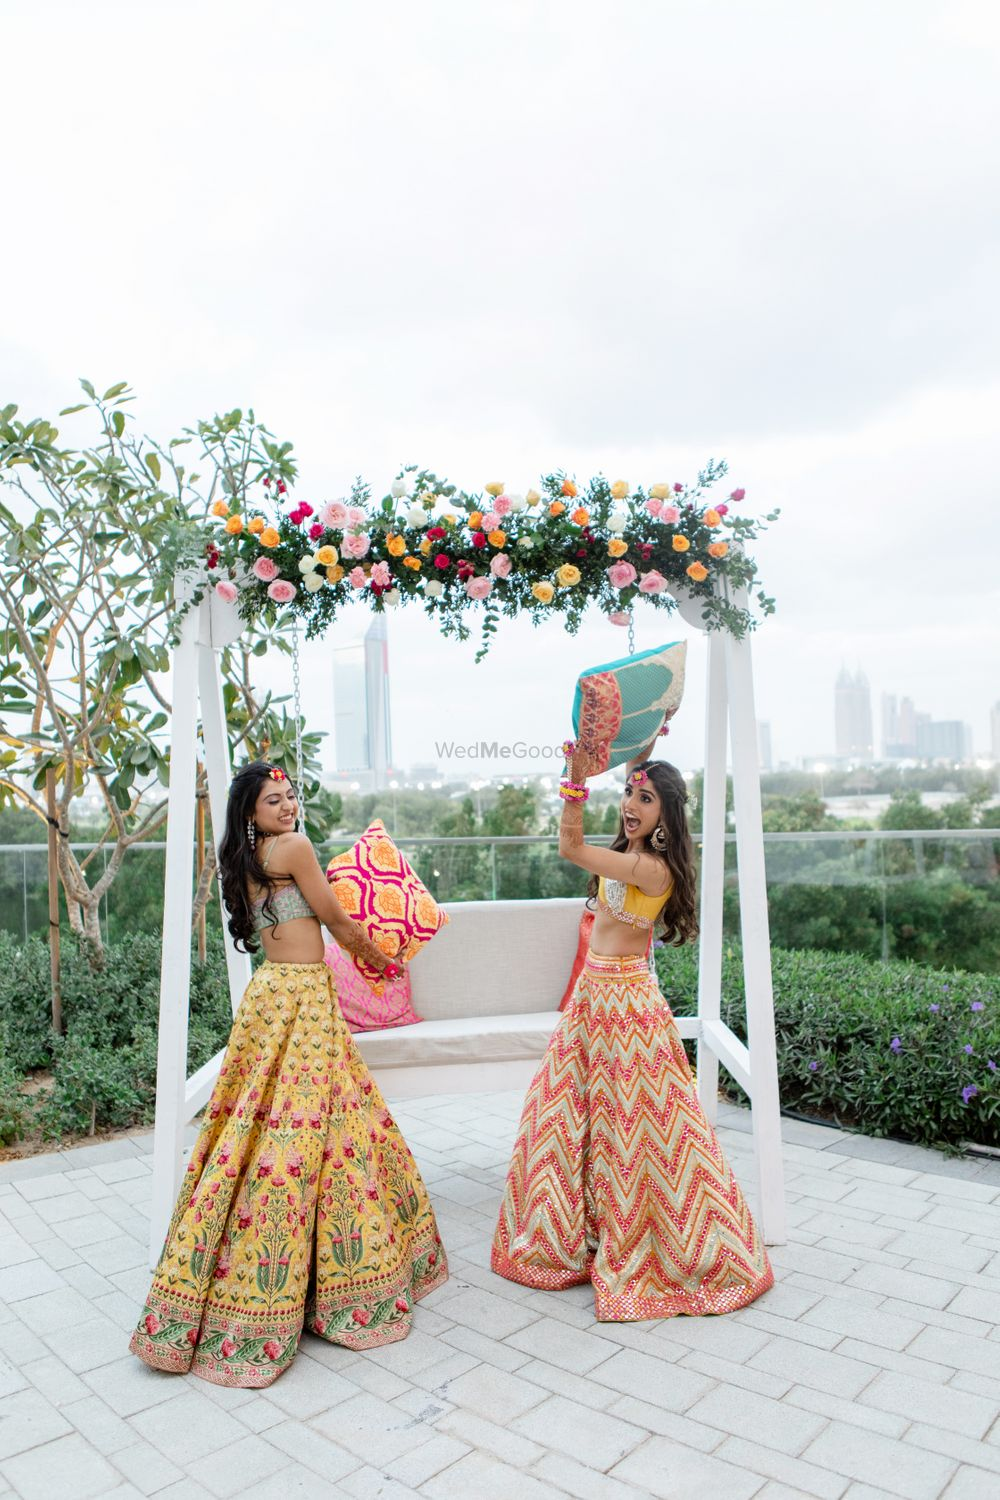 Photo of Candid shot of a bride and her sister having fun.